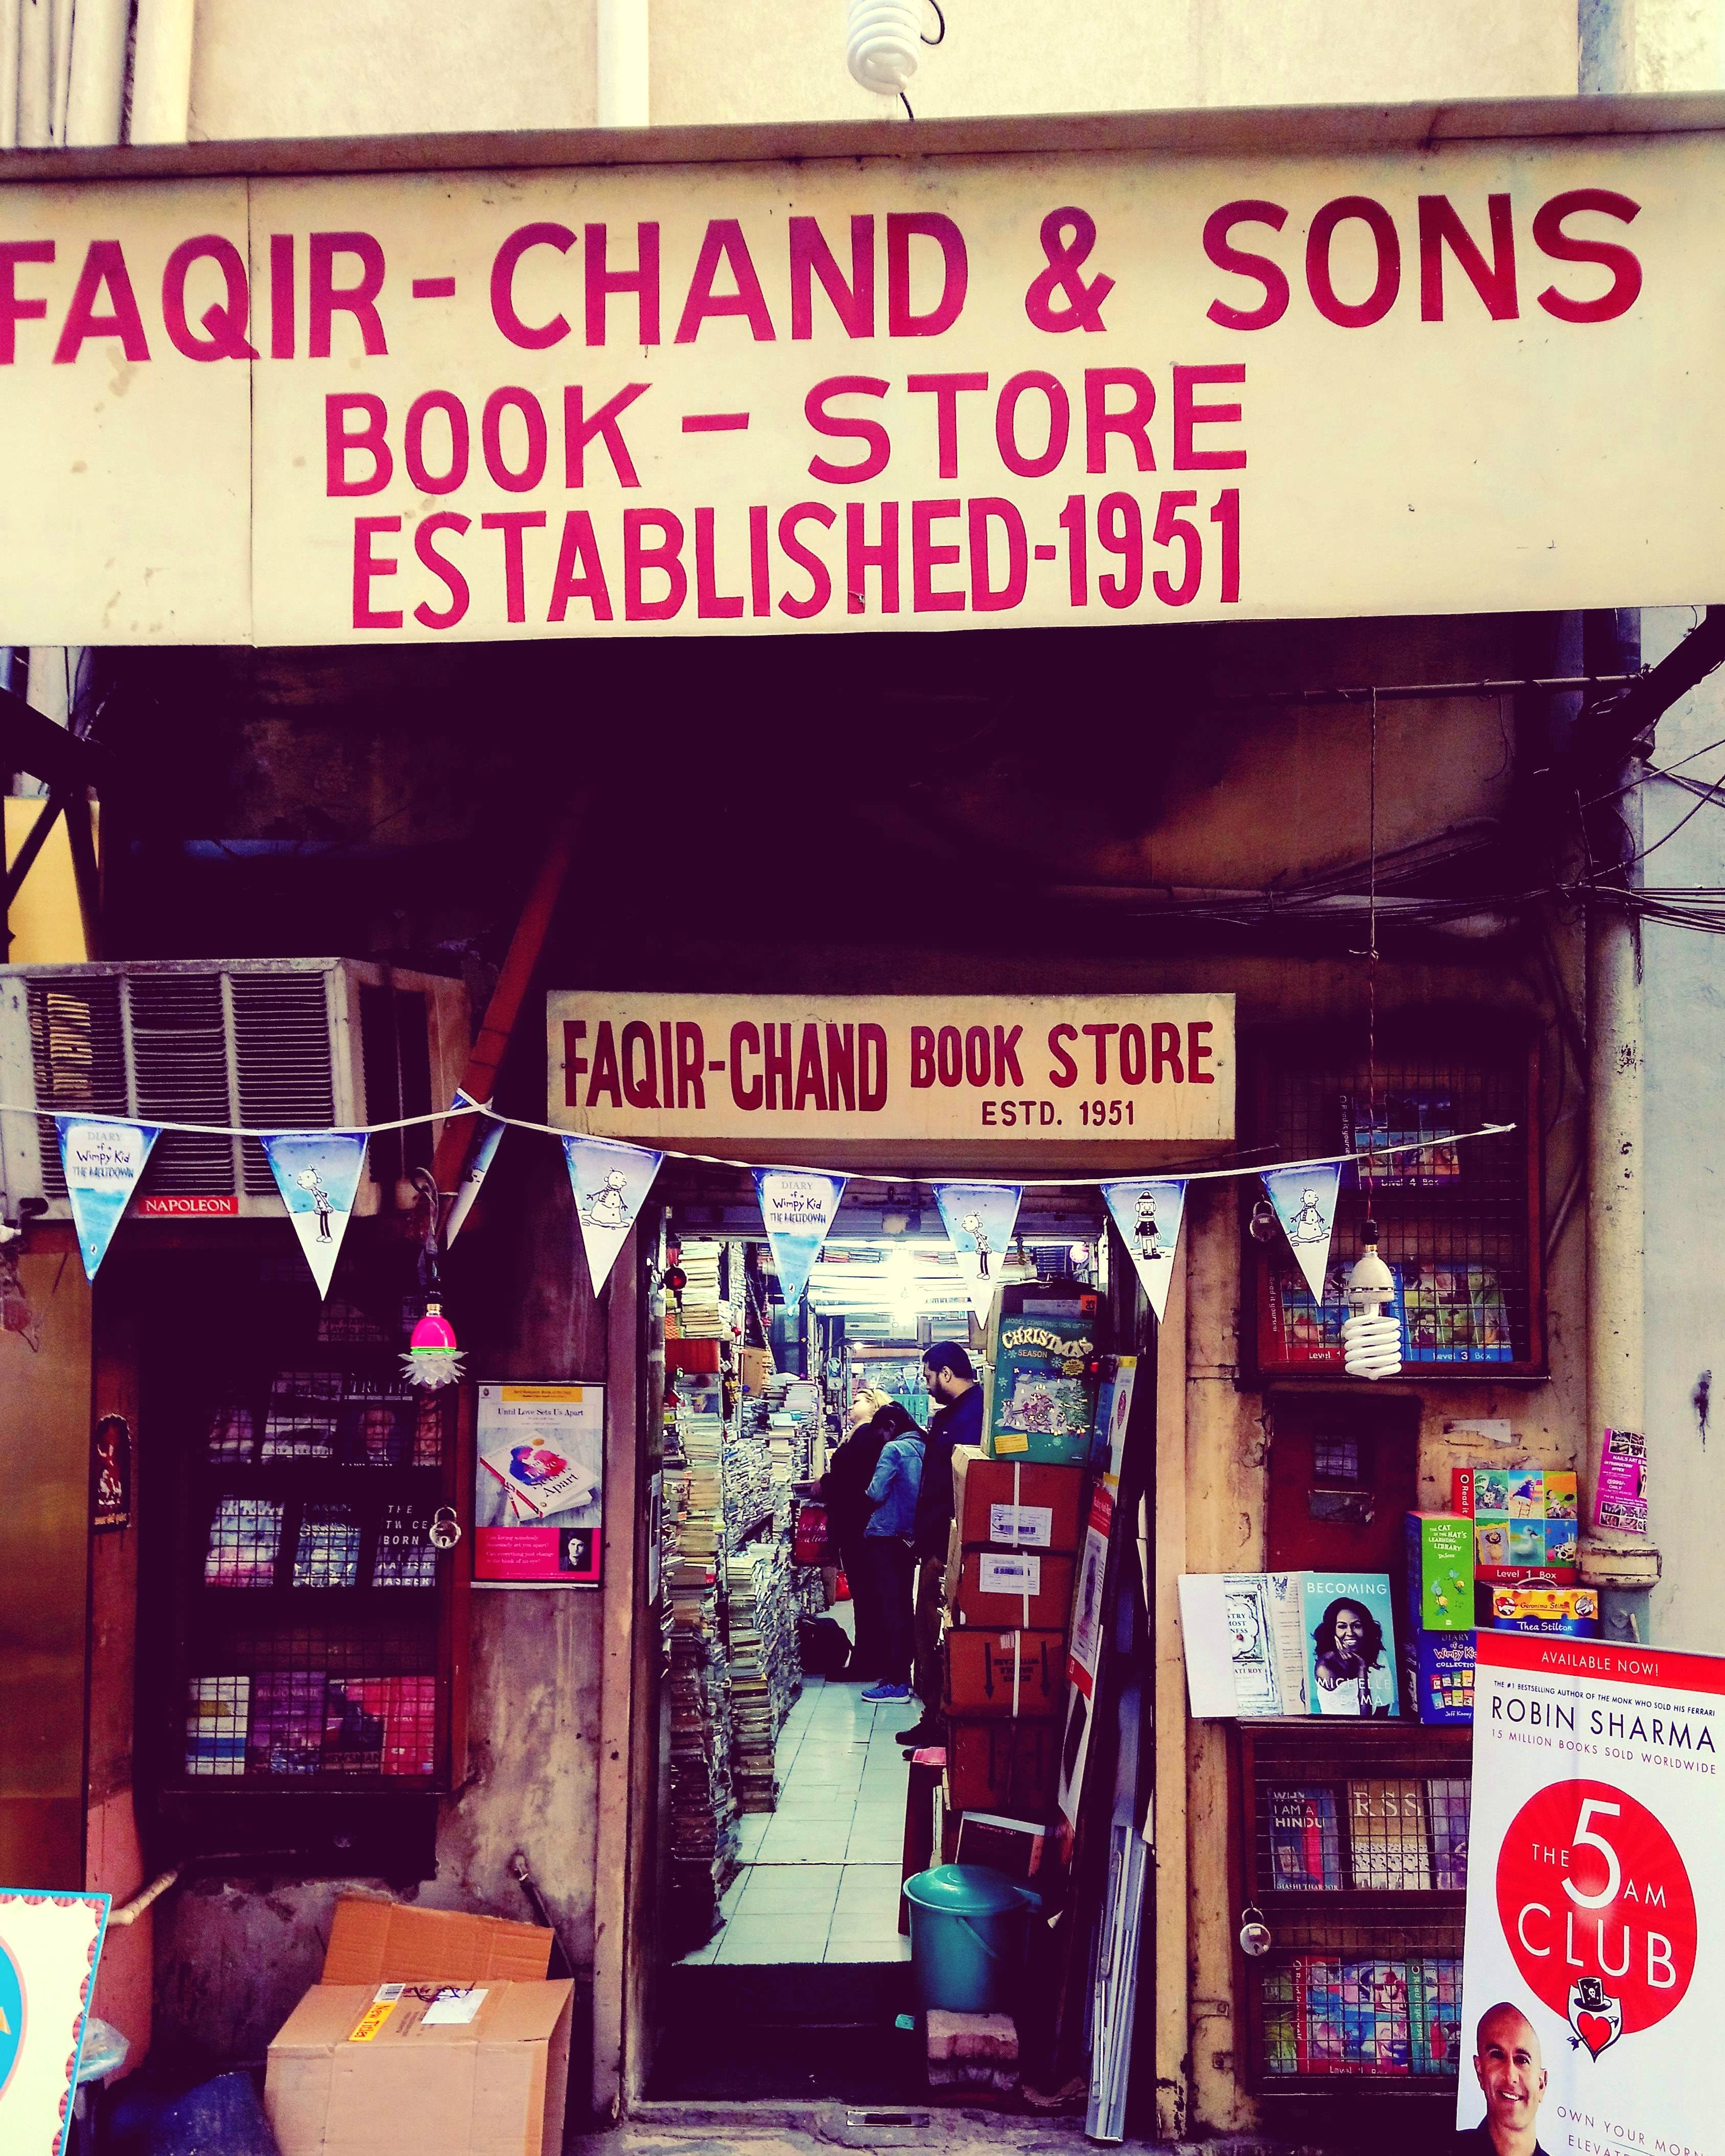 image - Faqir Chand & Sons